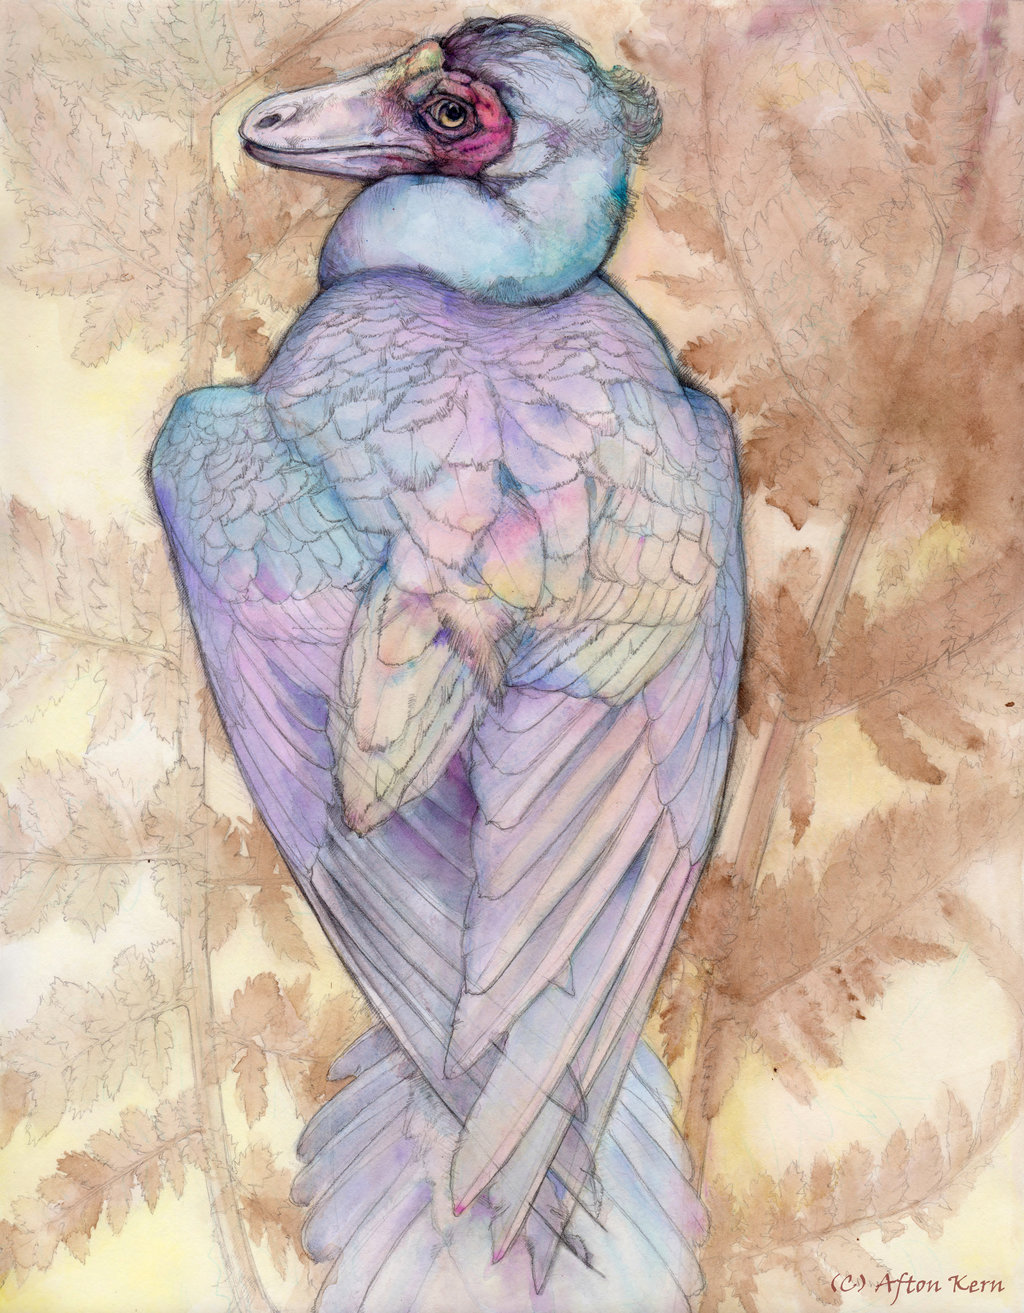 Illustration of Caihong juji by Afton Kern.